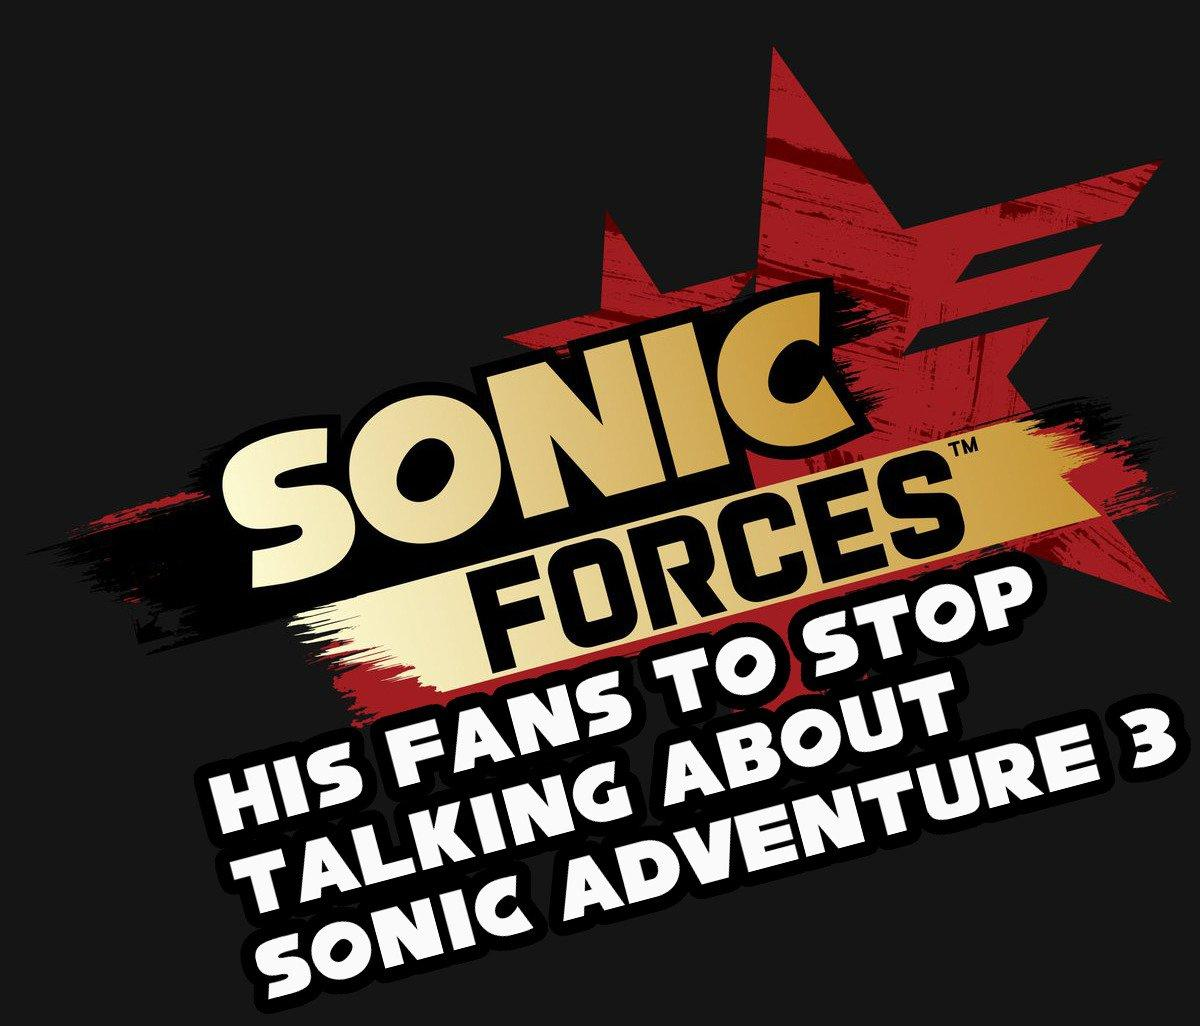 Sonic Forces His Fans To Stop Talking About Sonic Adventure 3